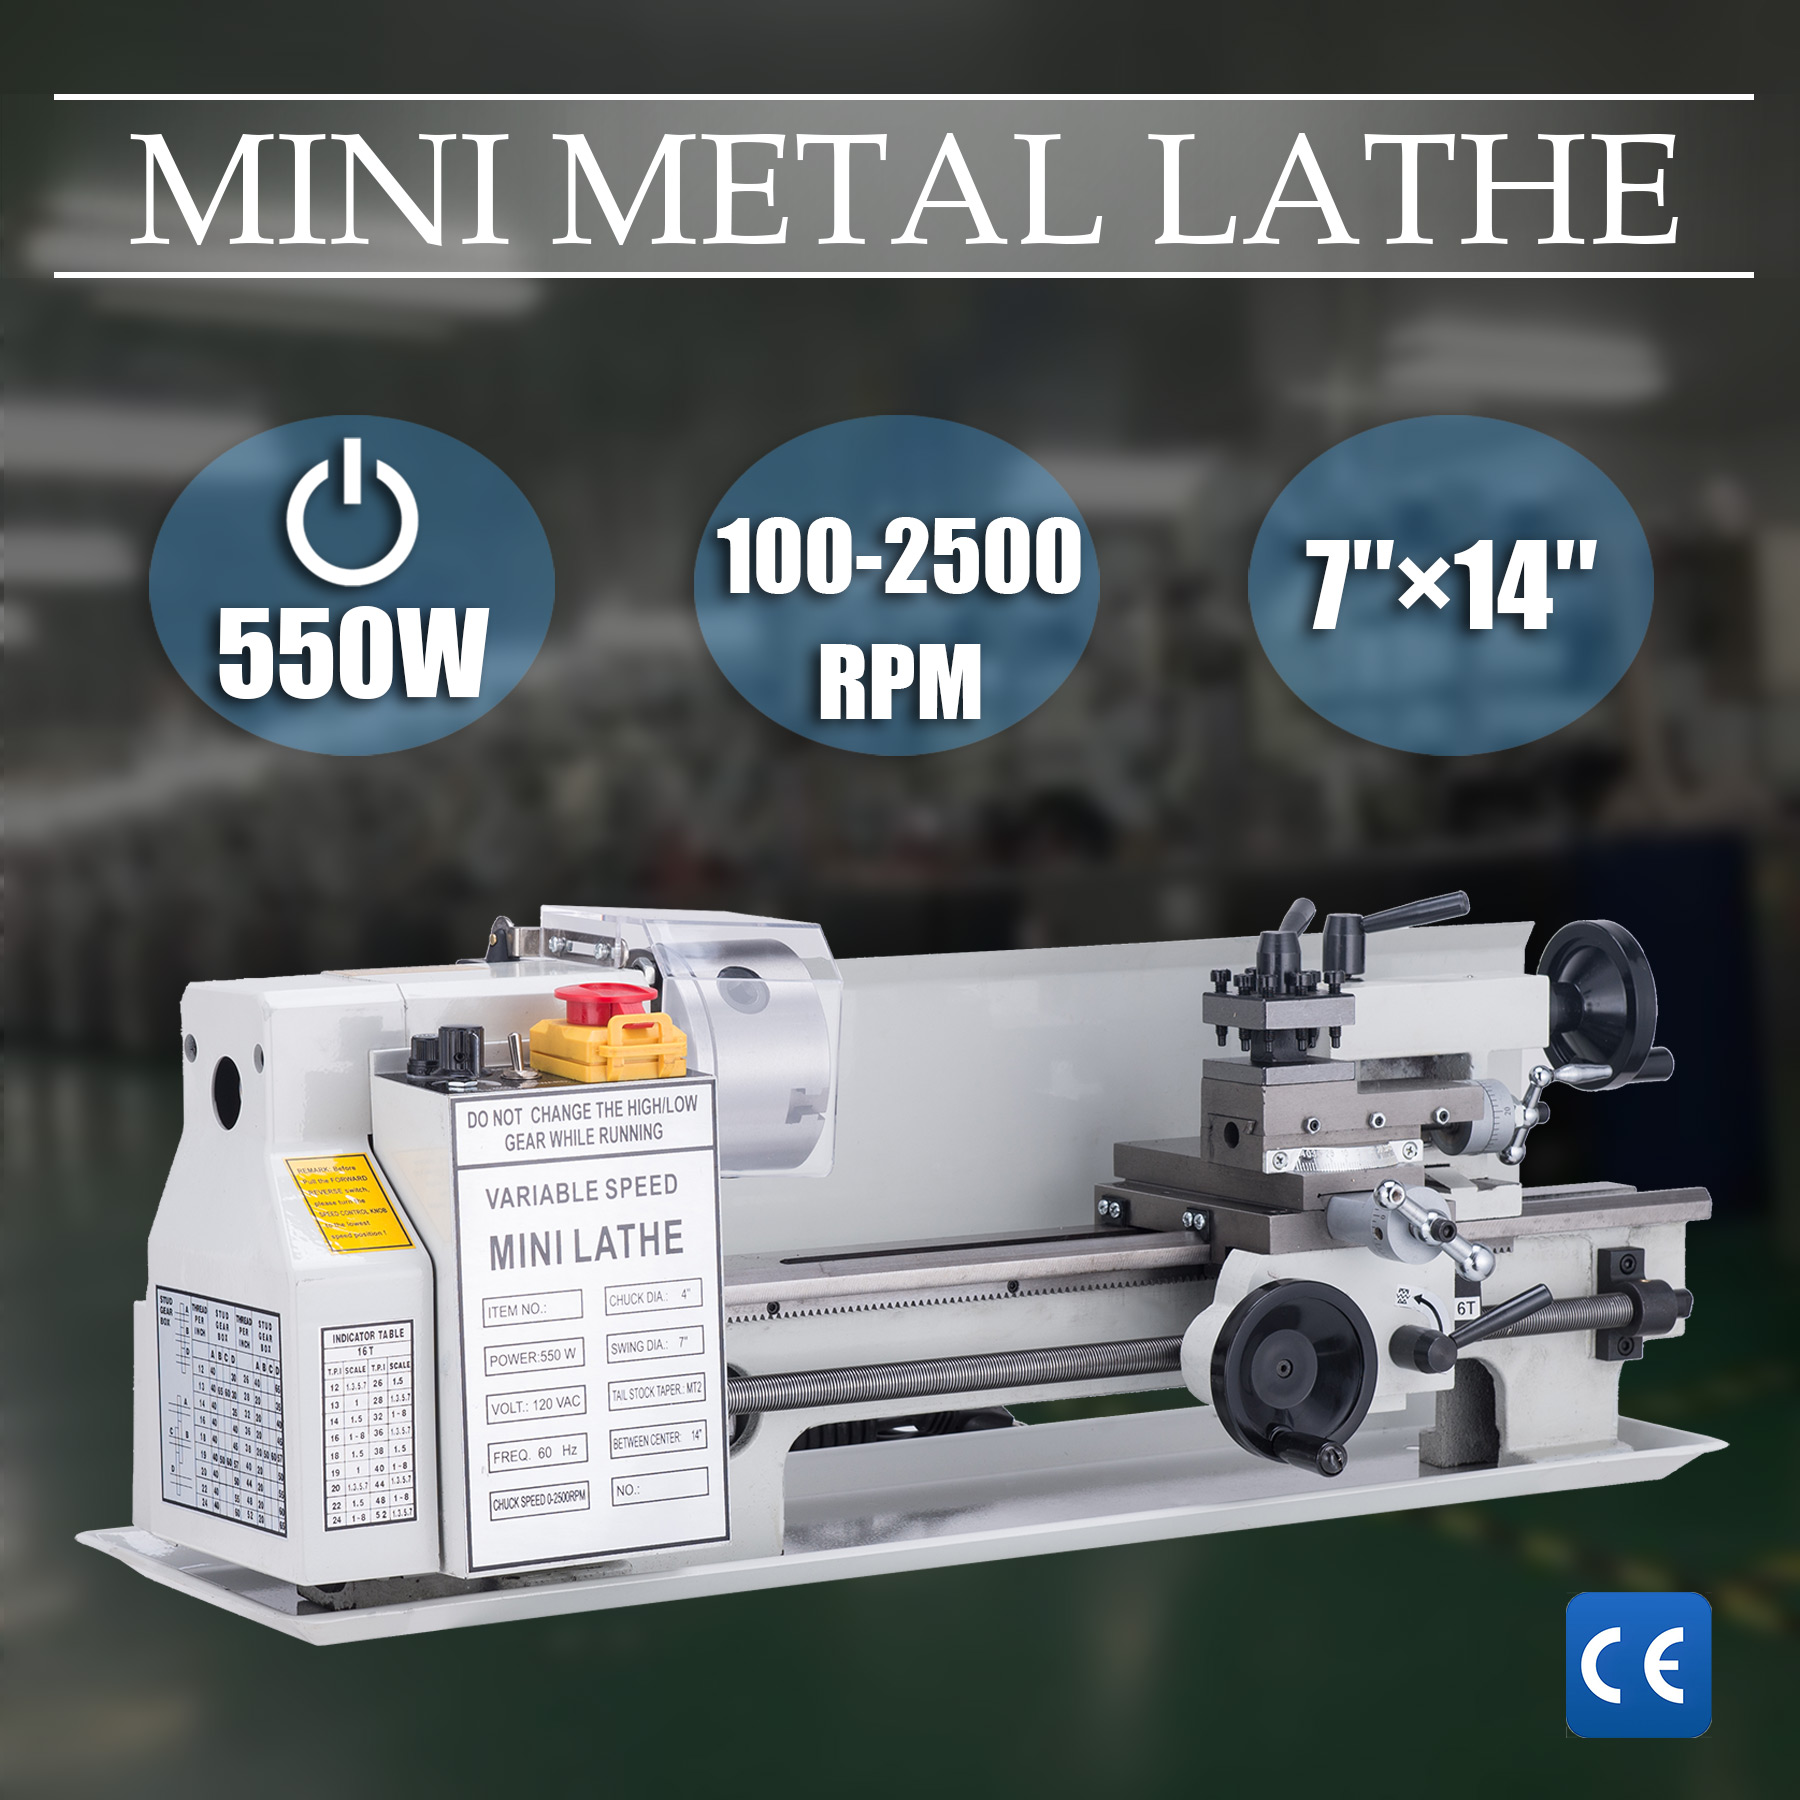 Mini Metal Lathe Bed 550W with Heat-Treated Lathe Bed